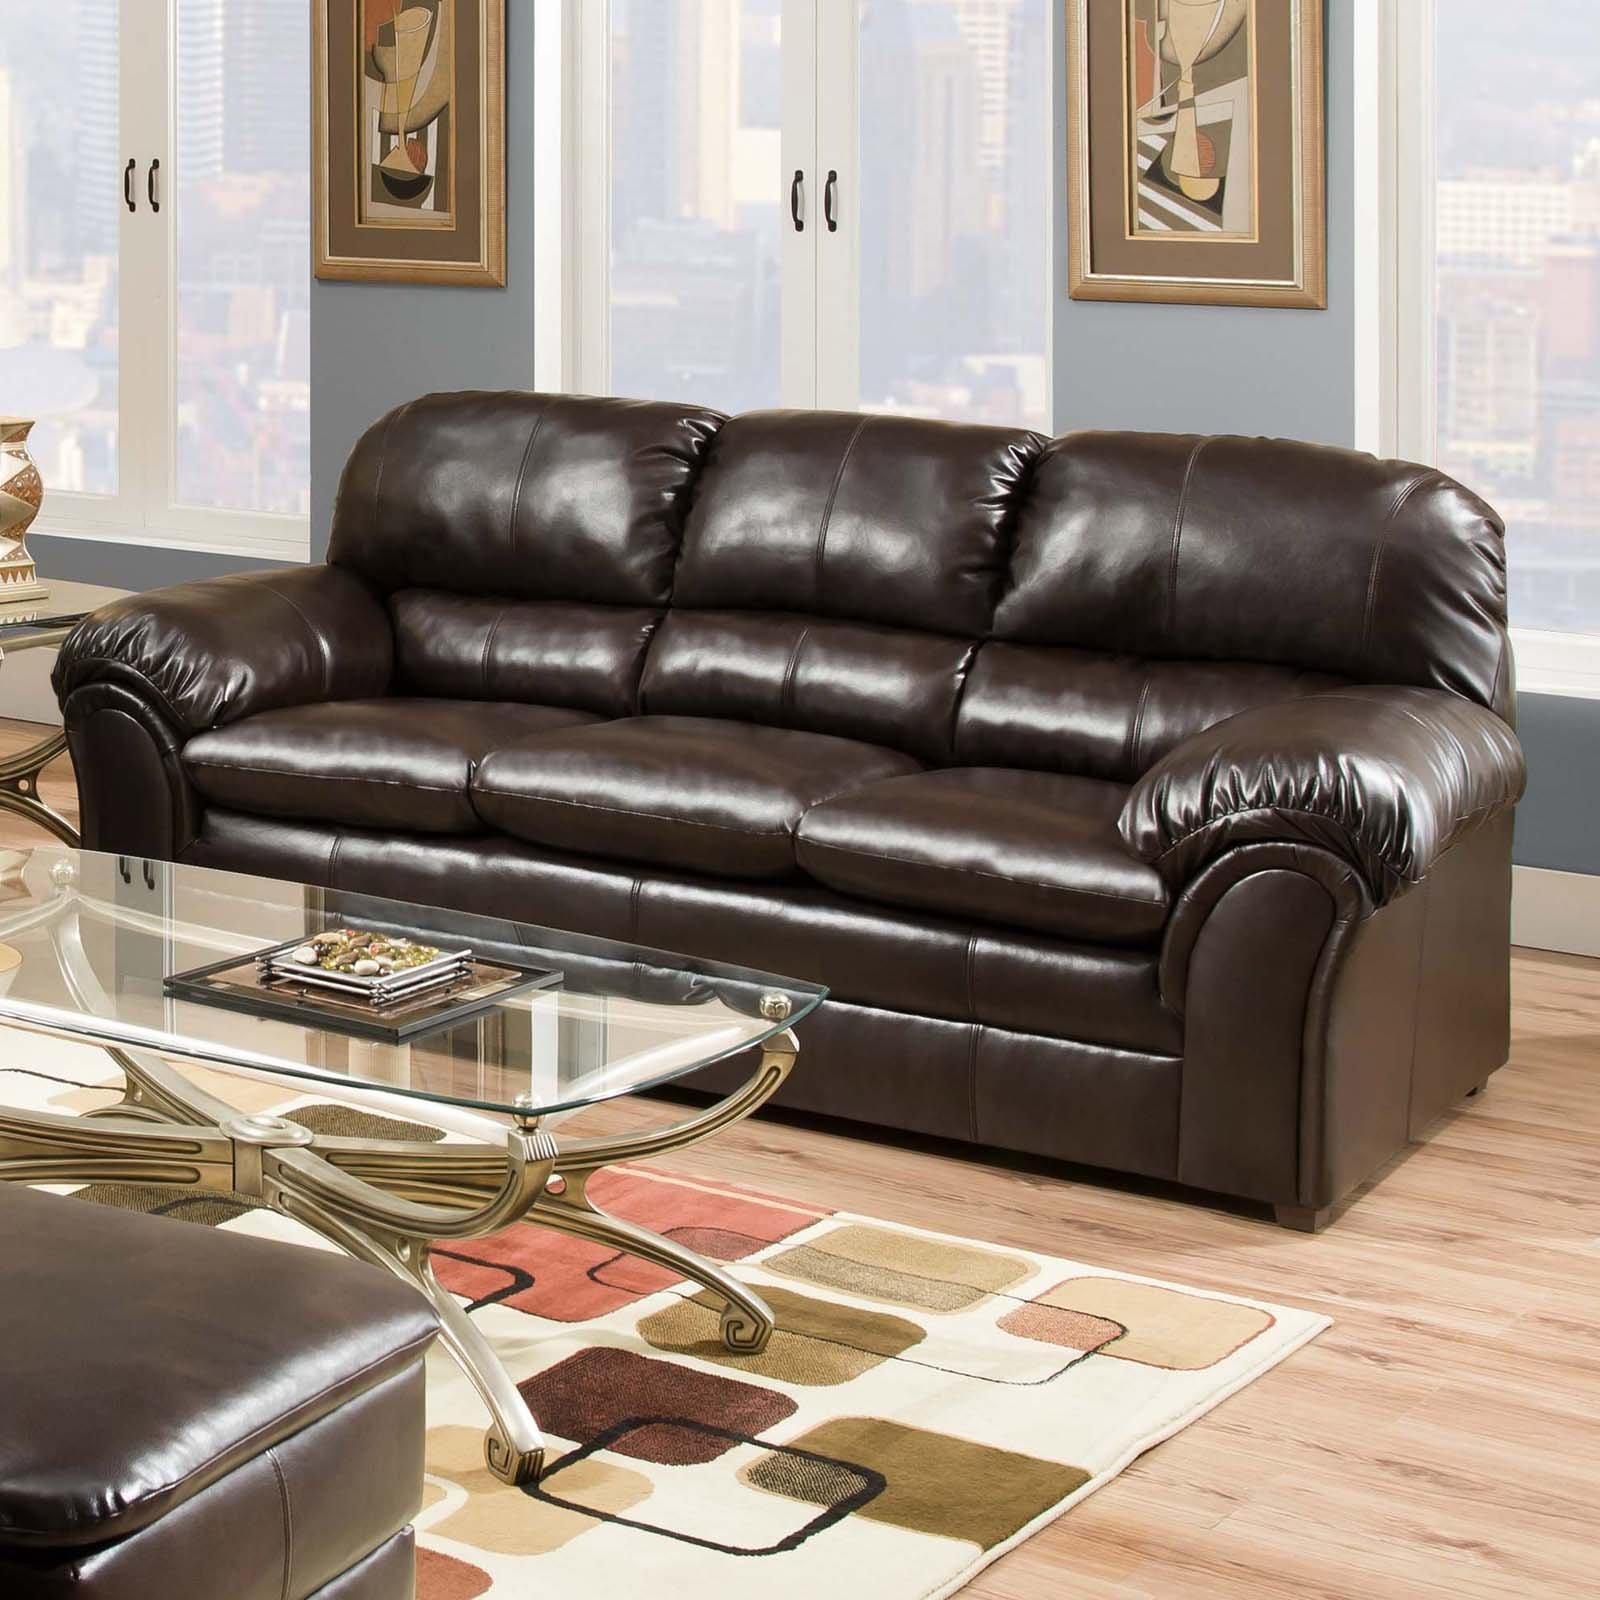 Simmons Upholstery Premier Bonded Leather Sofa | Hayneedle With Bonded Leather Sofas (View 6 of 20)